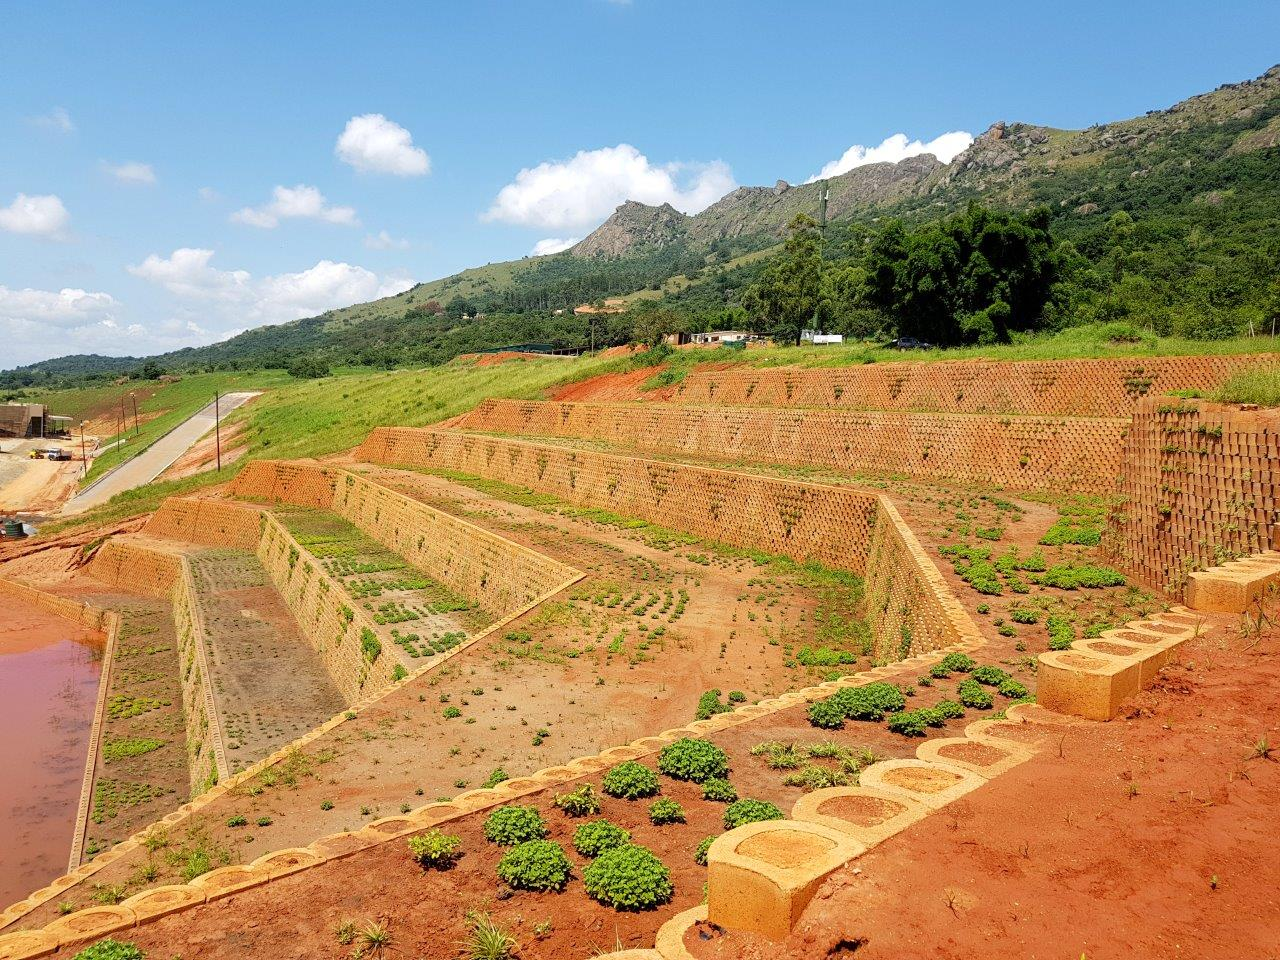 Large scale Terraforce retaining wall, Ezulwini, Swaziland, for the new International Convention Centre (ICC) commissioned by King Mswati III.